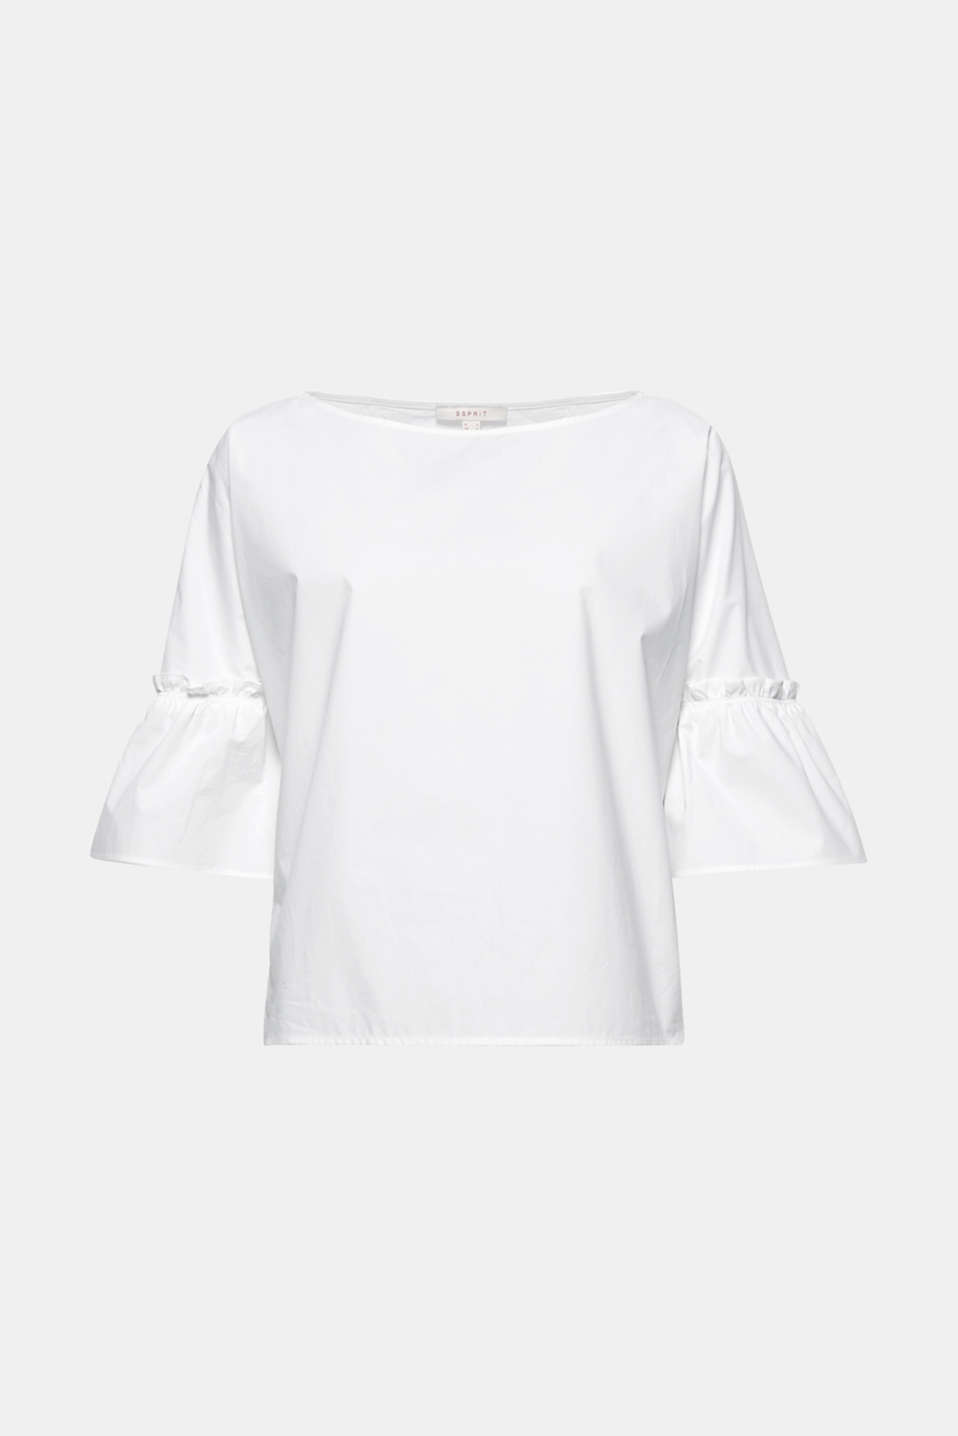 This poplin blouse is a fresh look for the season with its clean, boxy and short cut and pretty flounce sleeves!